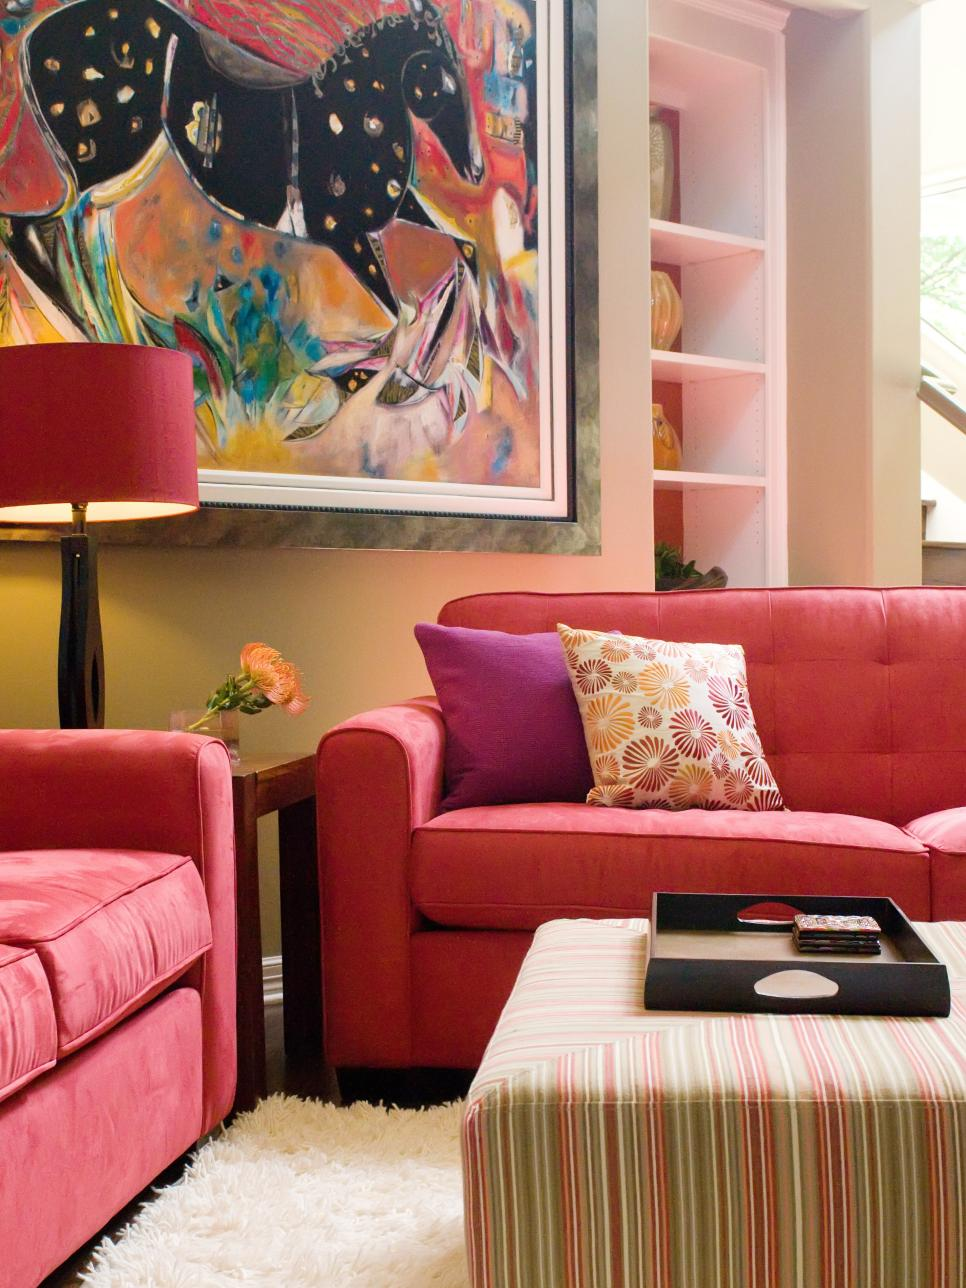 decorating-a-living-room-with-a-red-sofa